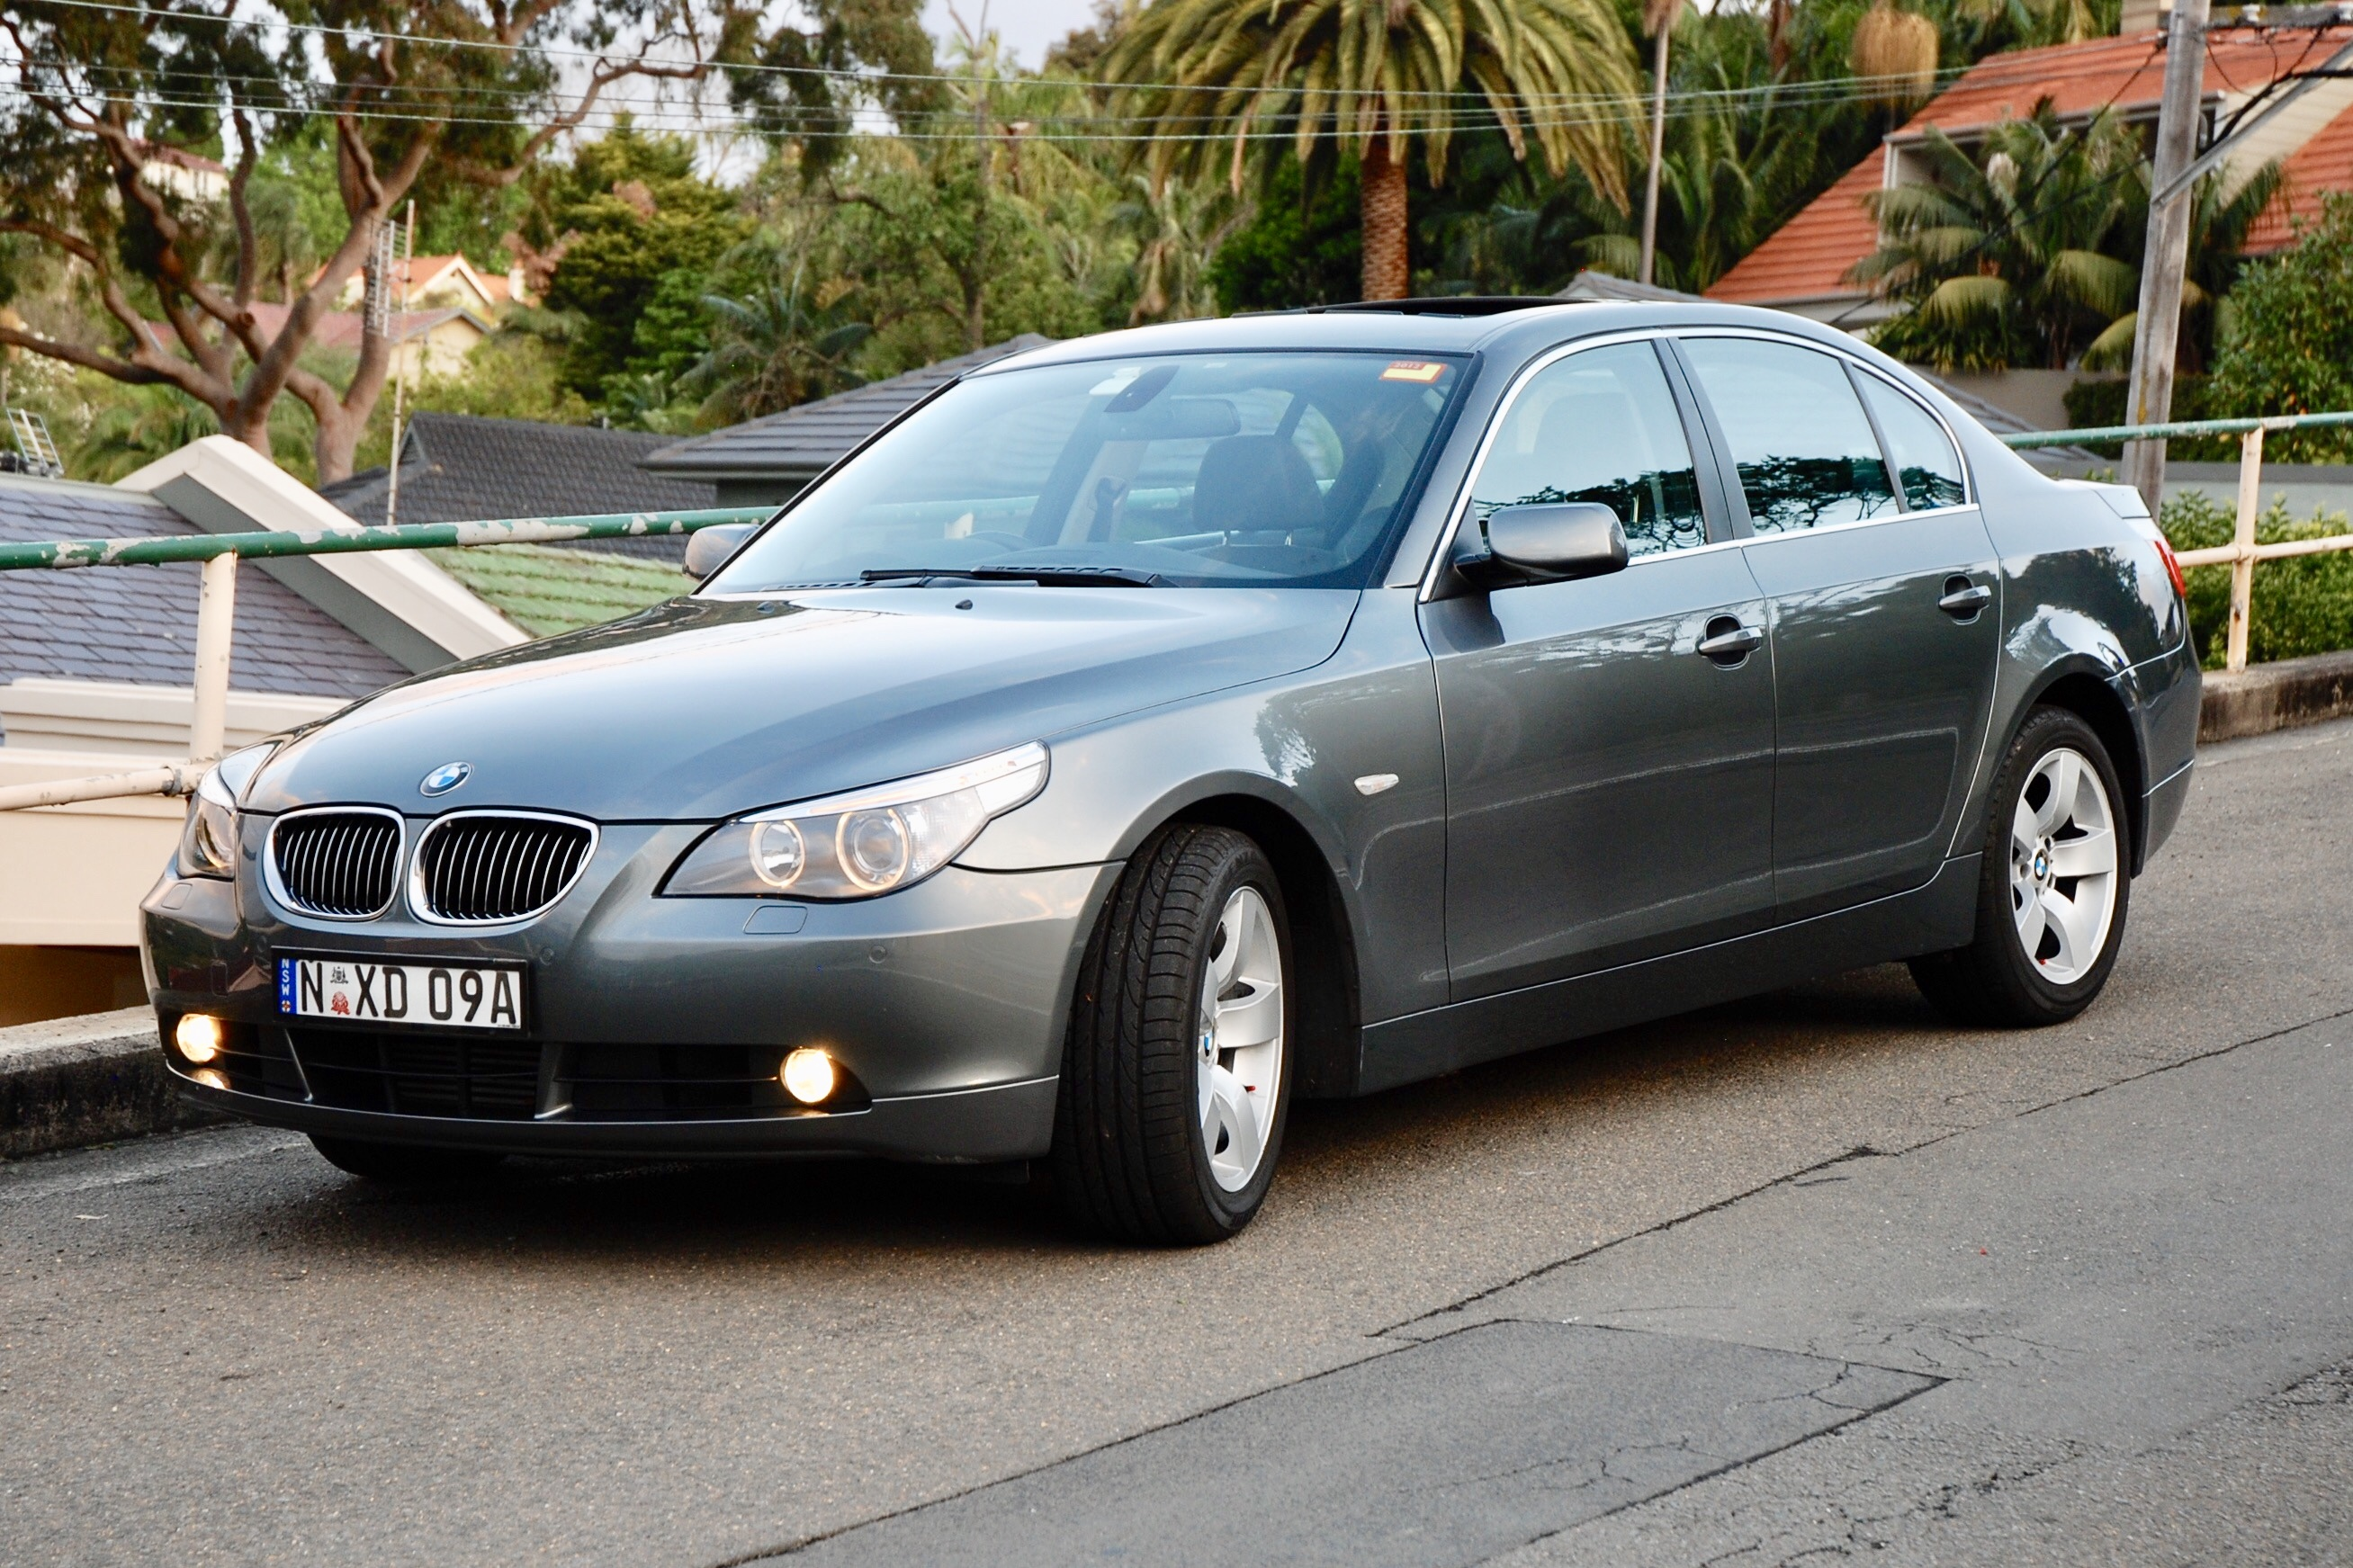 Picture of Andre's 2007 BMW 530d